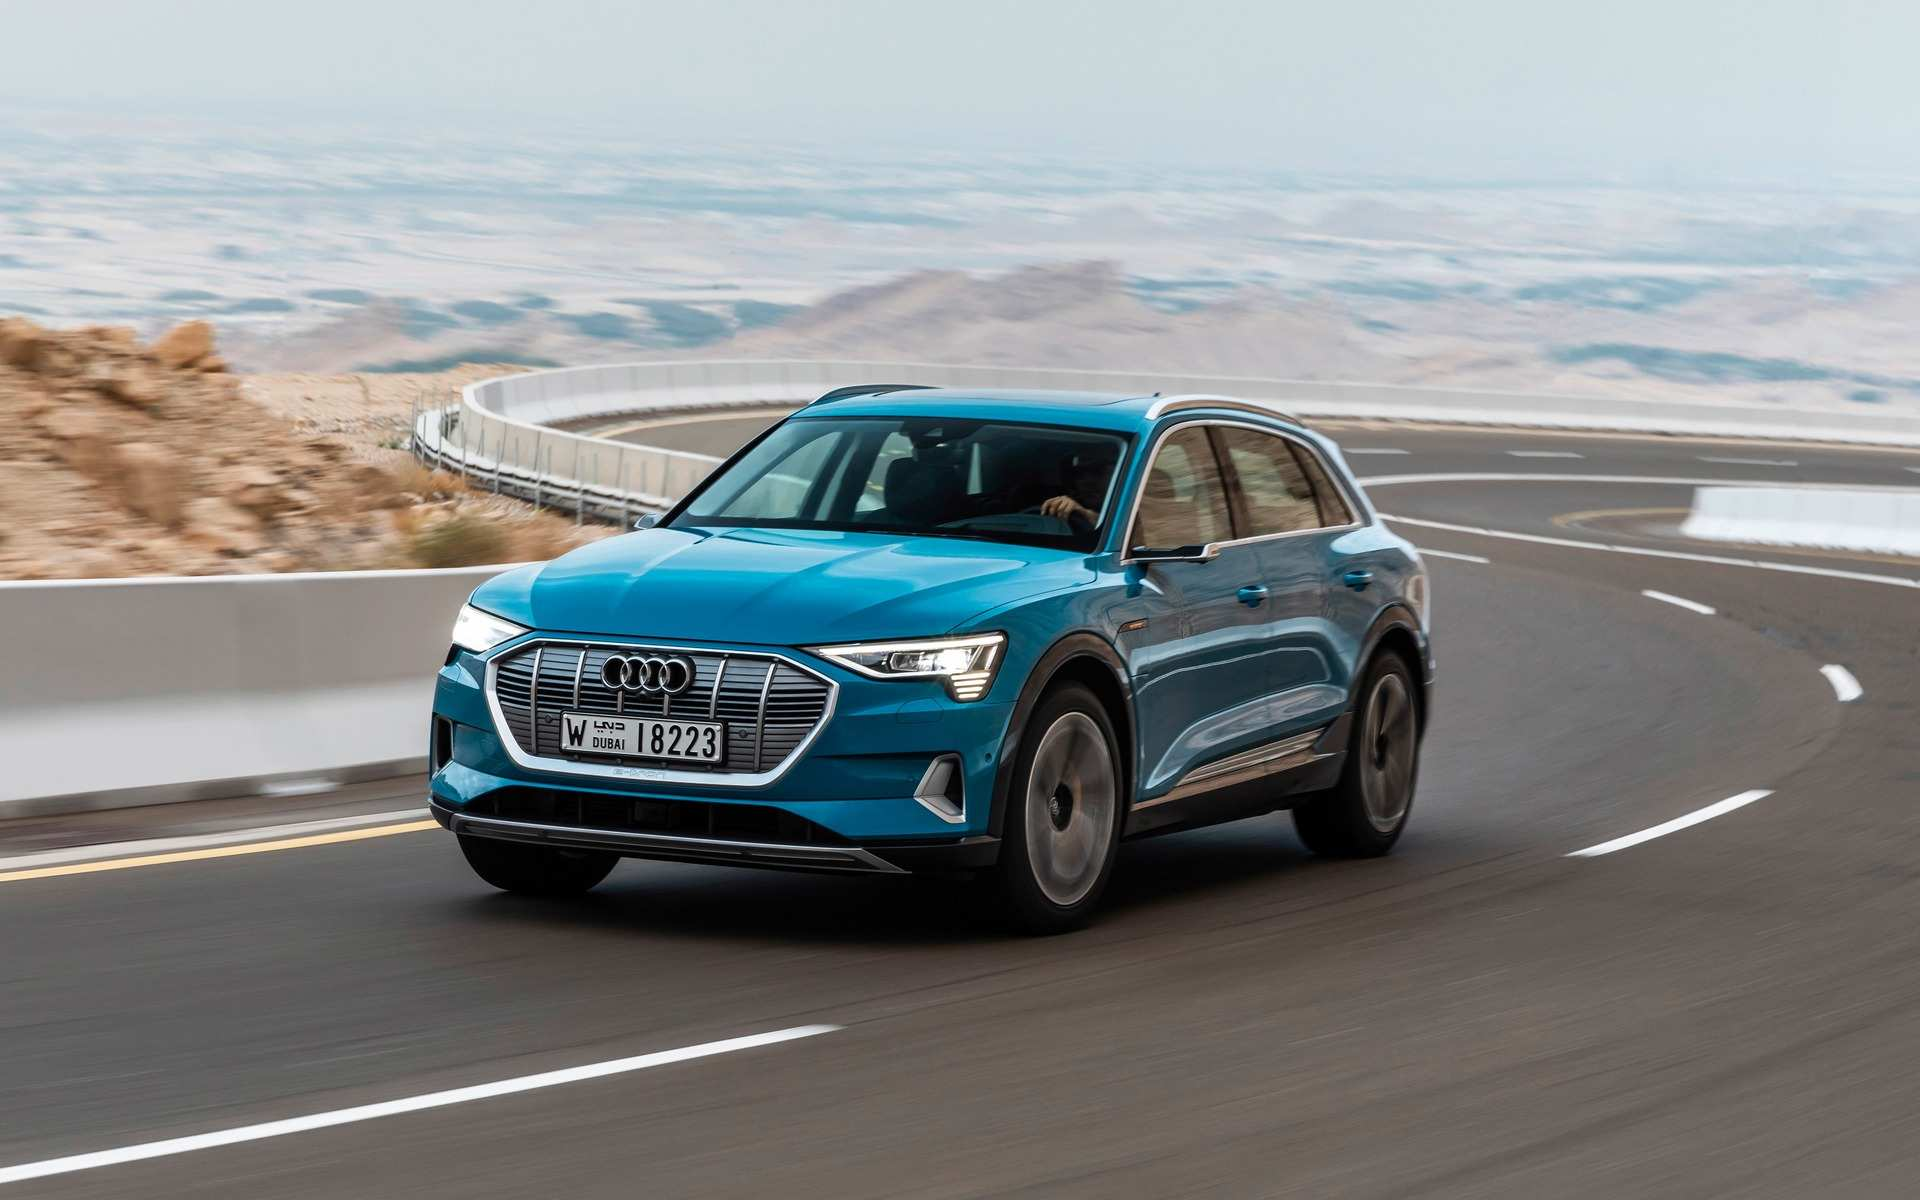 85 Best Review 2019 Audi E Tron Quattro New Review for 2019 Audi E Tron Quattro